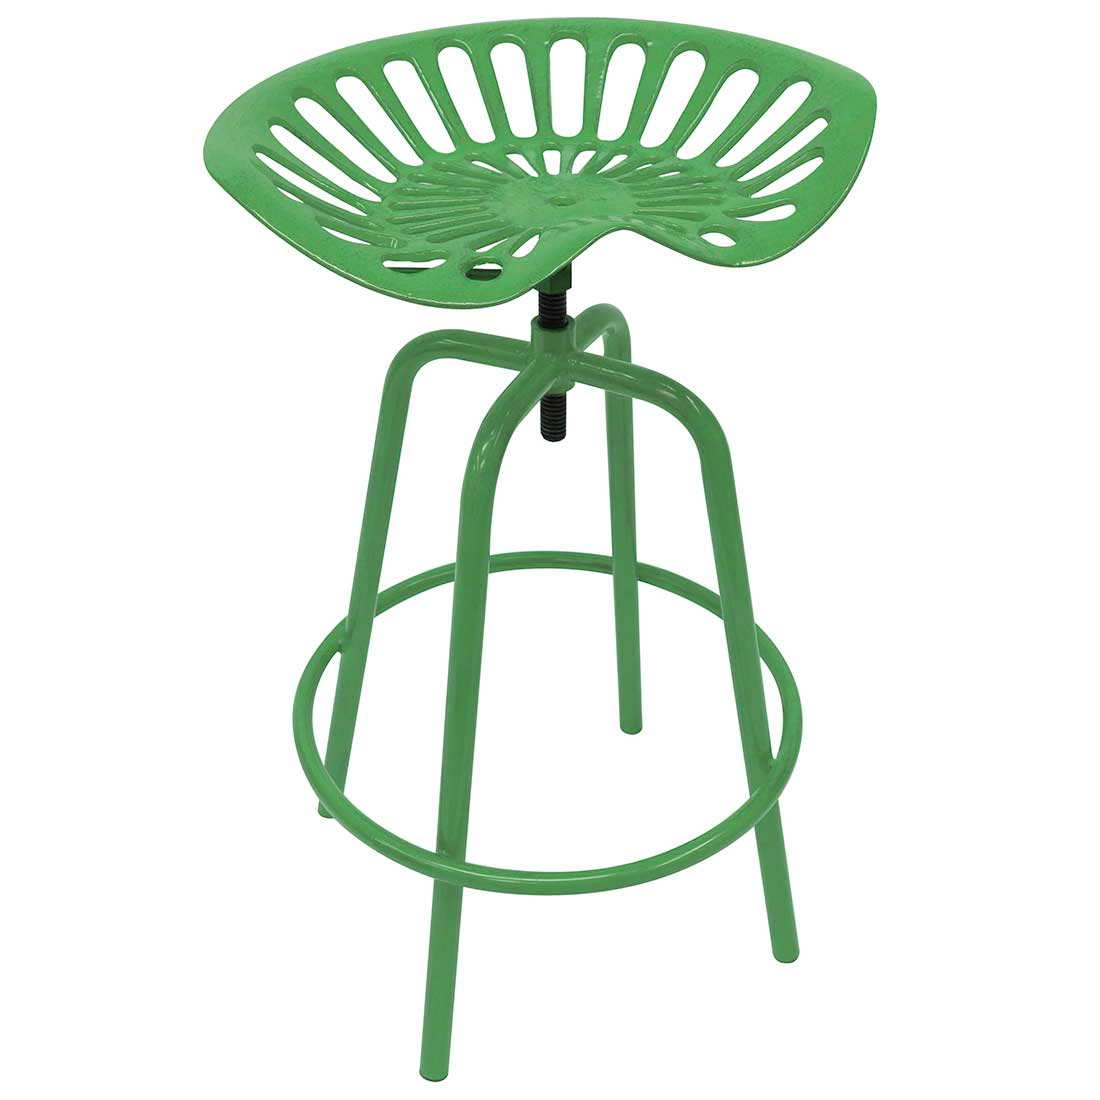 Outstanding Tractor Seat Stool Green Creativecarmelina Interior Chair Design Creativecarmelinacom